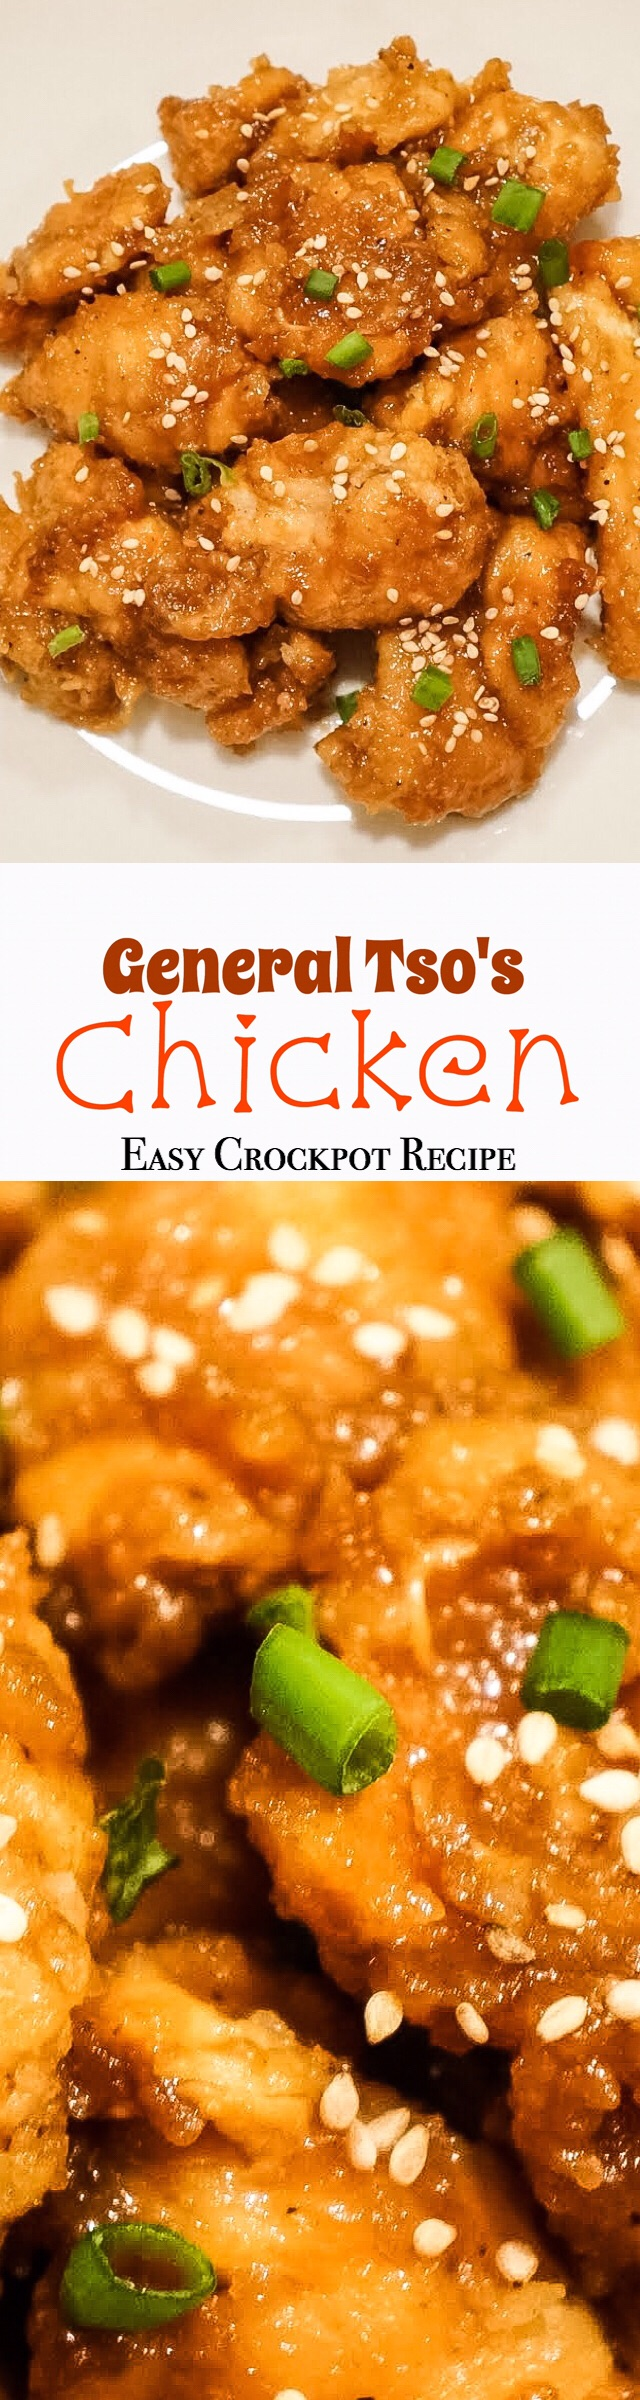 Shake things up with this easy crockpot recipe! Yummy take on General Tso's Chicken!